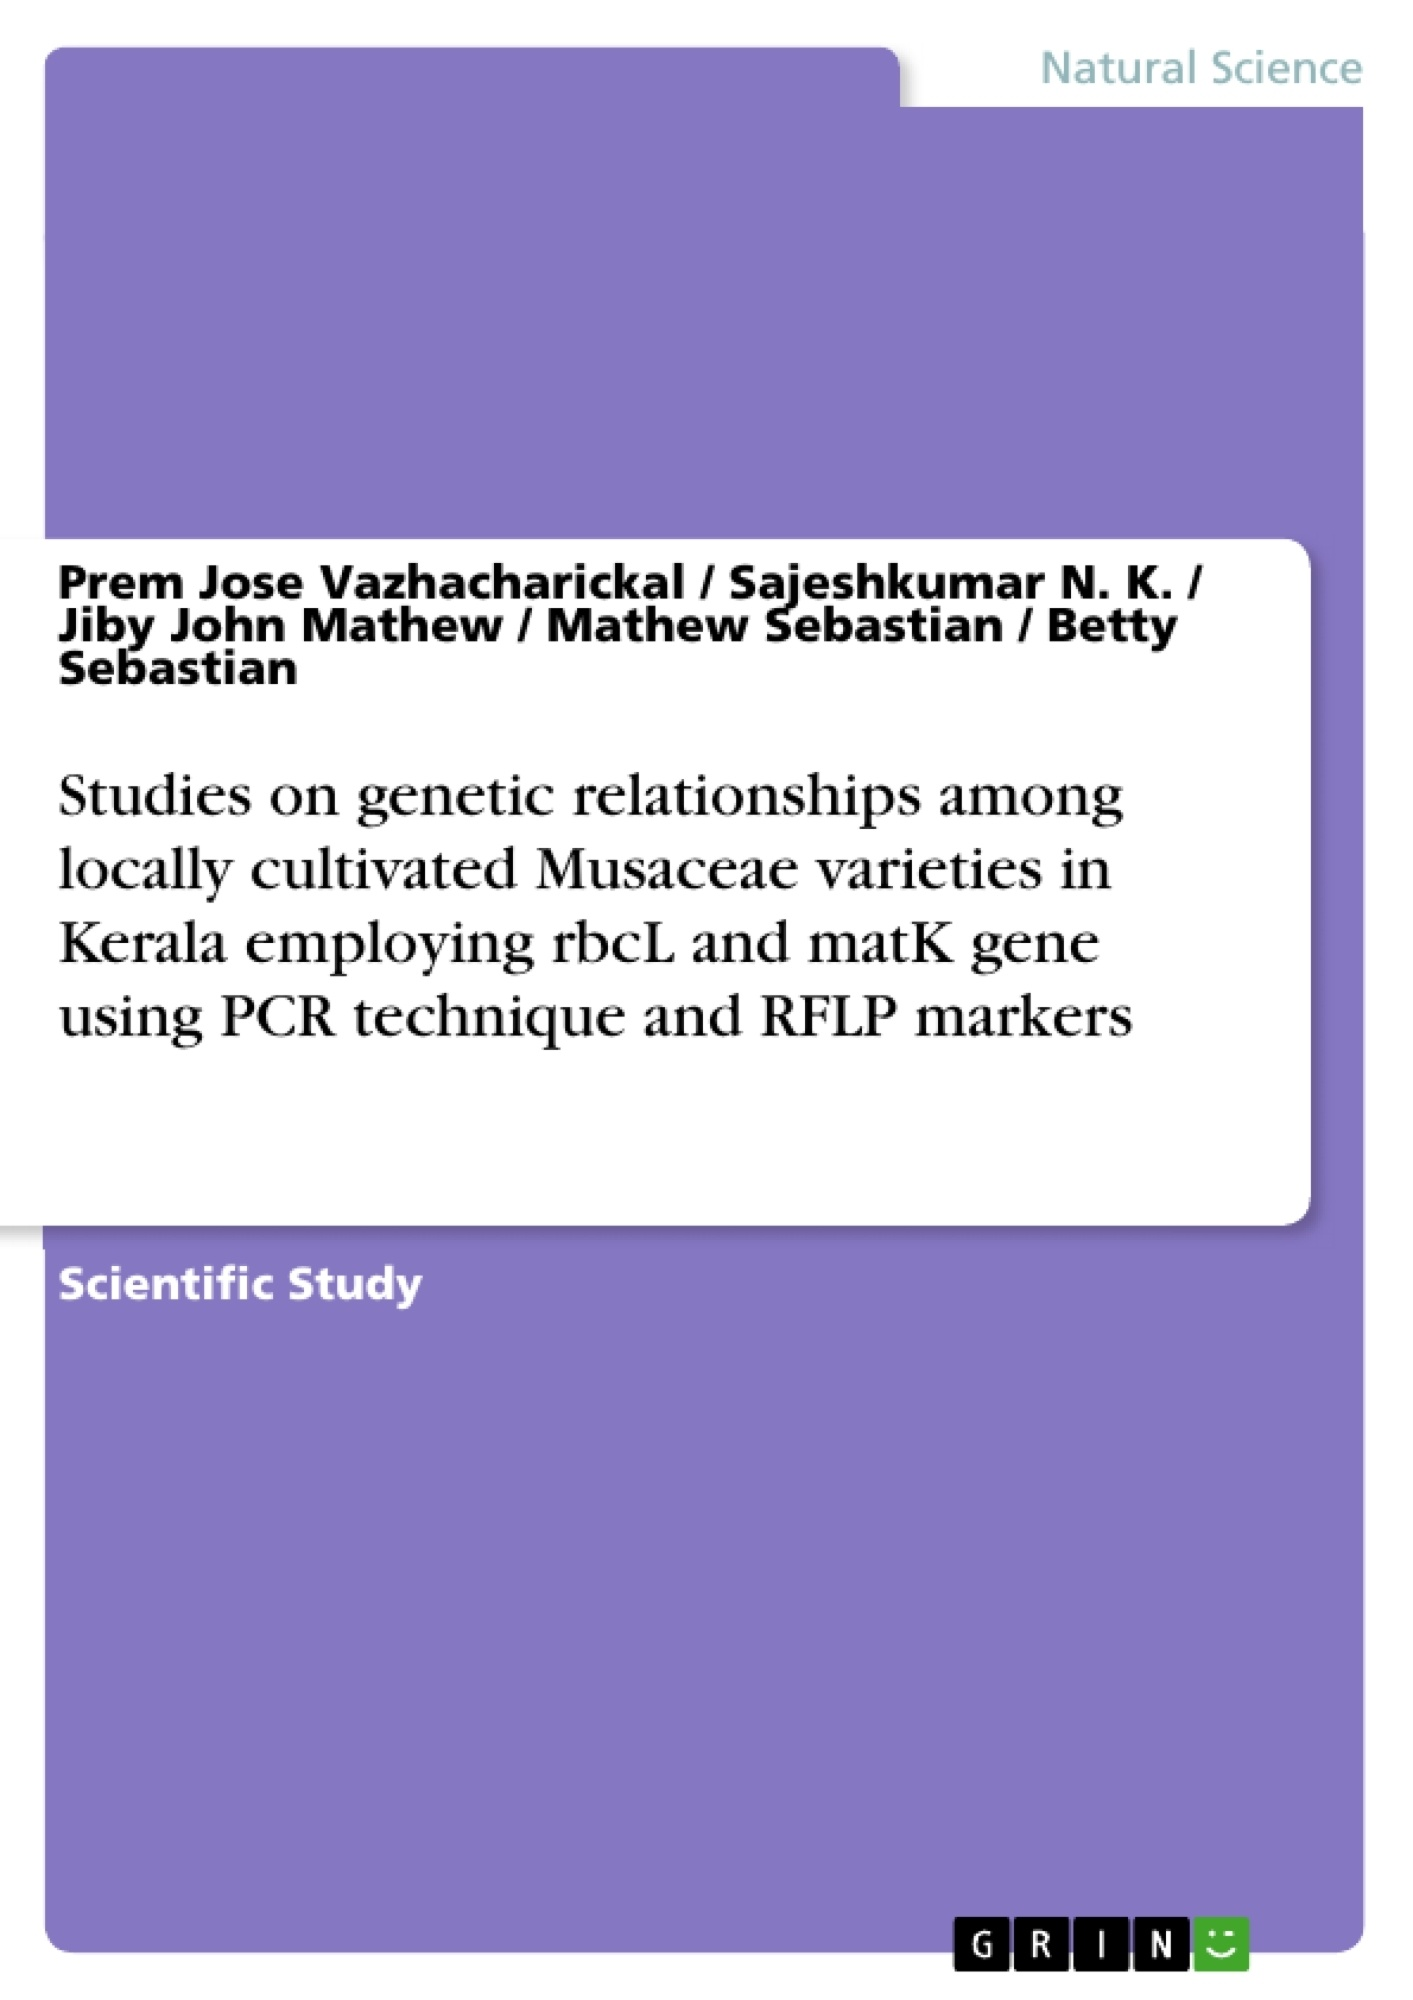 Title: Studies on genetic relationships among locally cultivated Musaceae varieties in Kerala employing rbcL and matK gene using PCR technique and RFLP markers